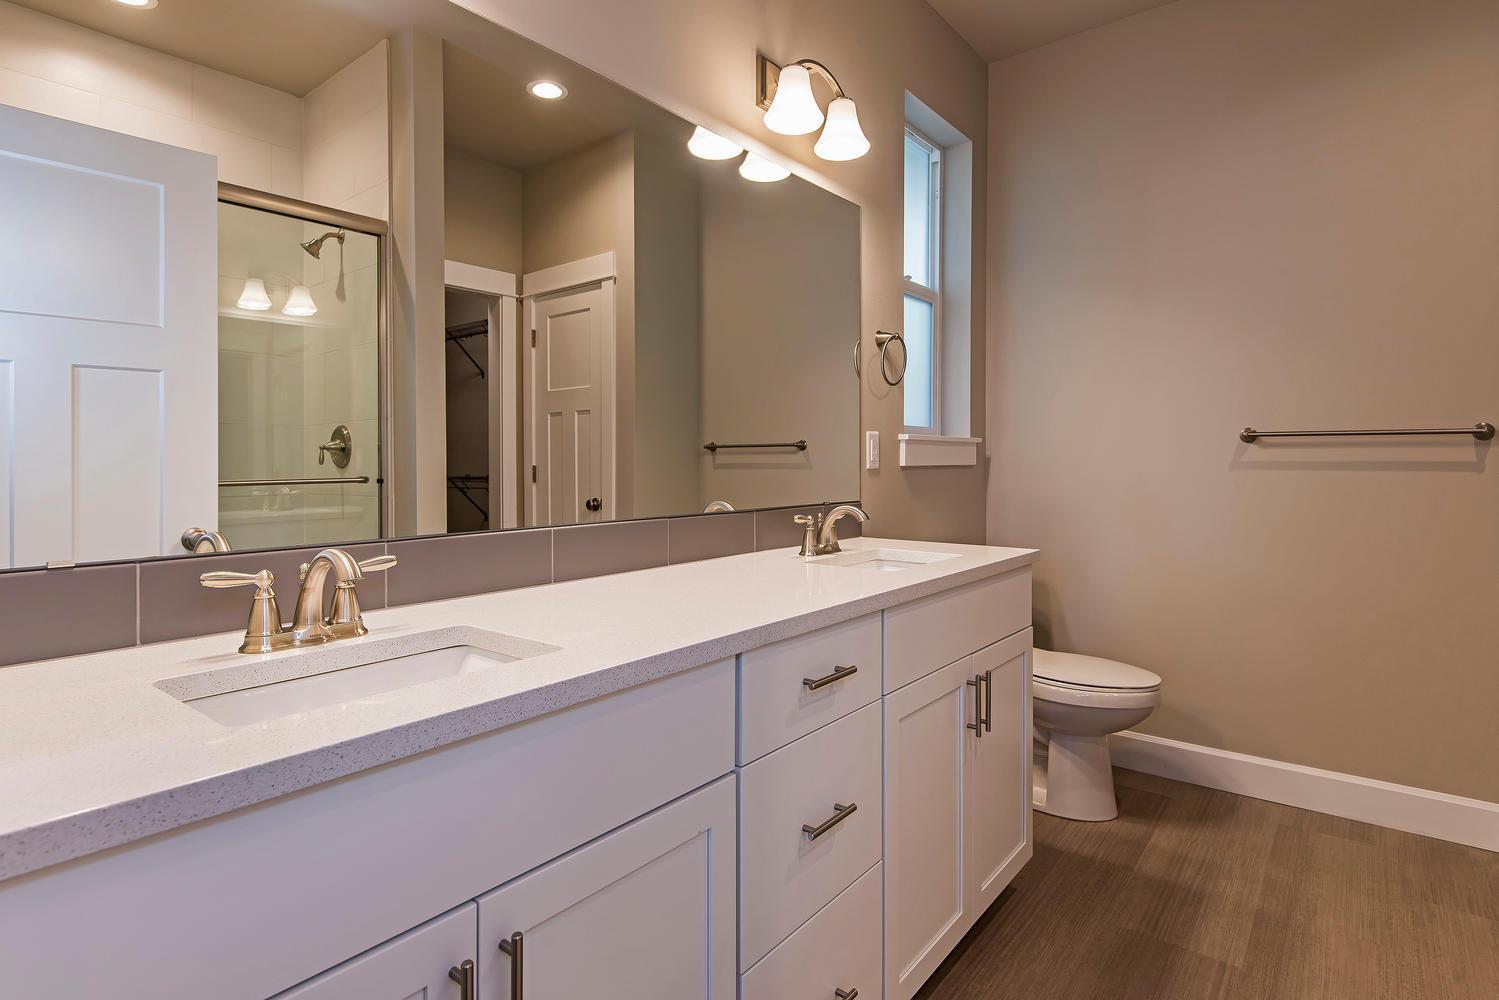 Bathroom featured in The Alder By Woodhill Homes in Central Oregon, OR